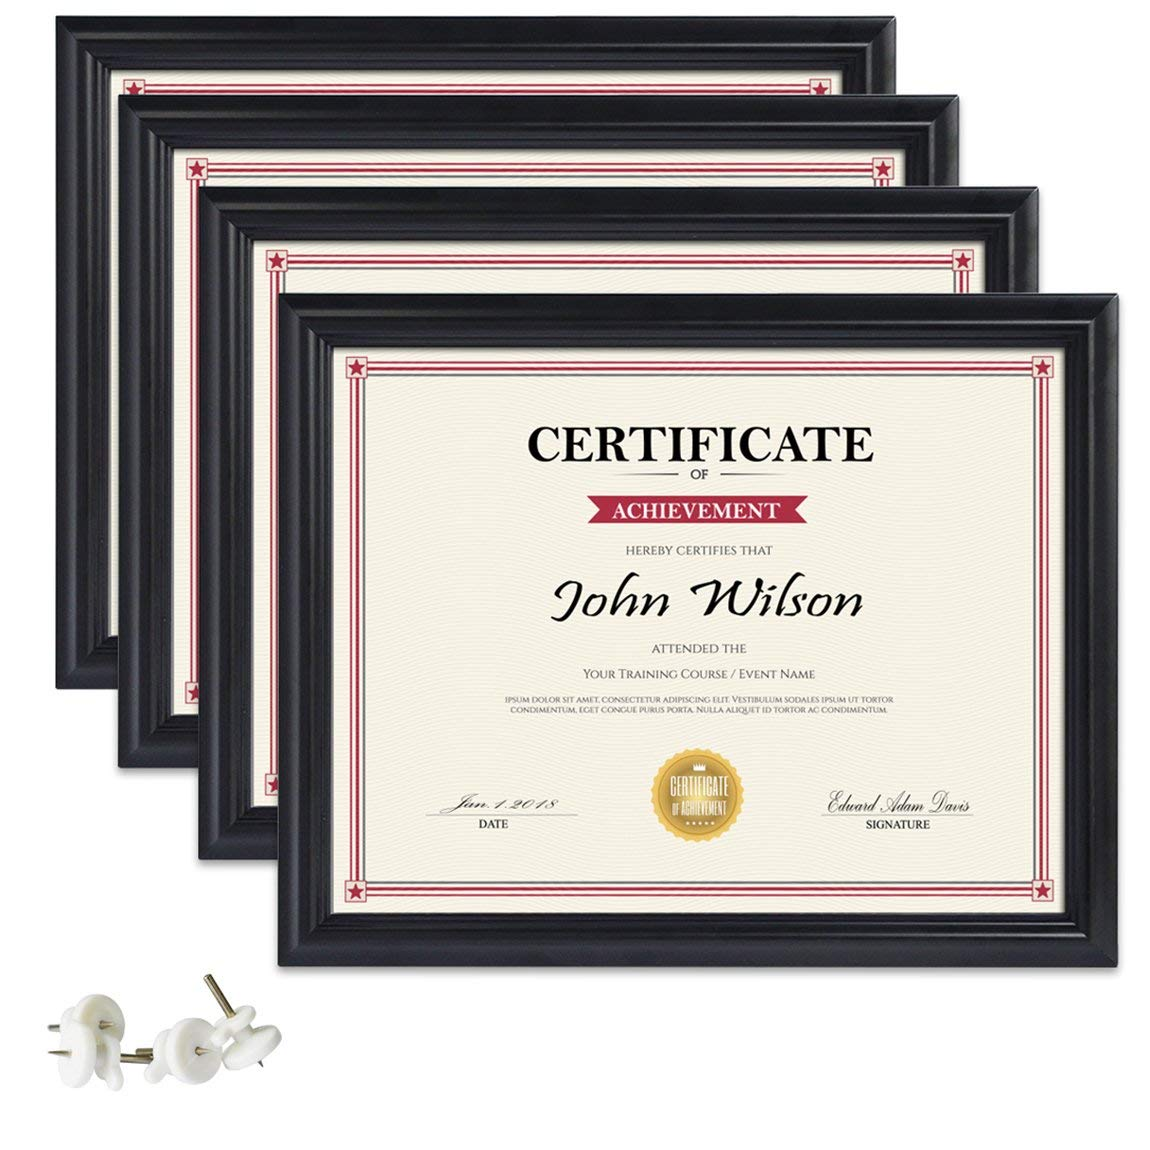 PETAFLOP 8.5x11 Picture Frames 4pcs Black Diploma Frame Set Certificate Document Protection Wall Tabletop Mounting Type